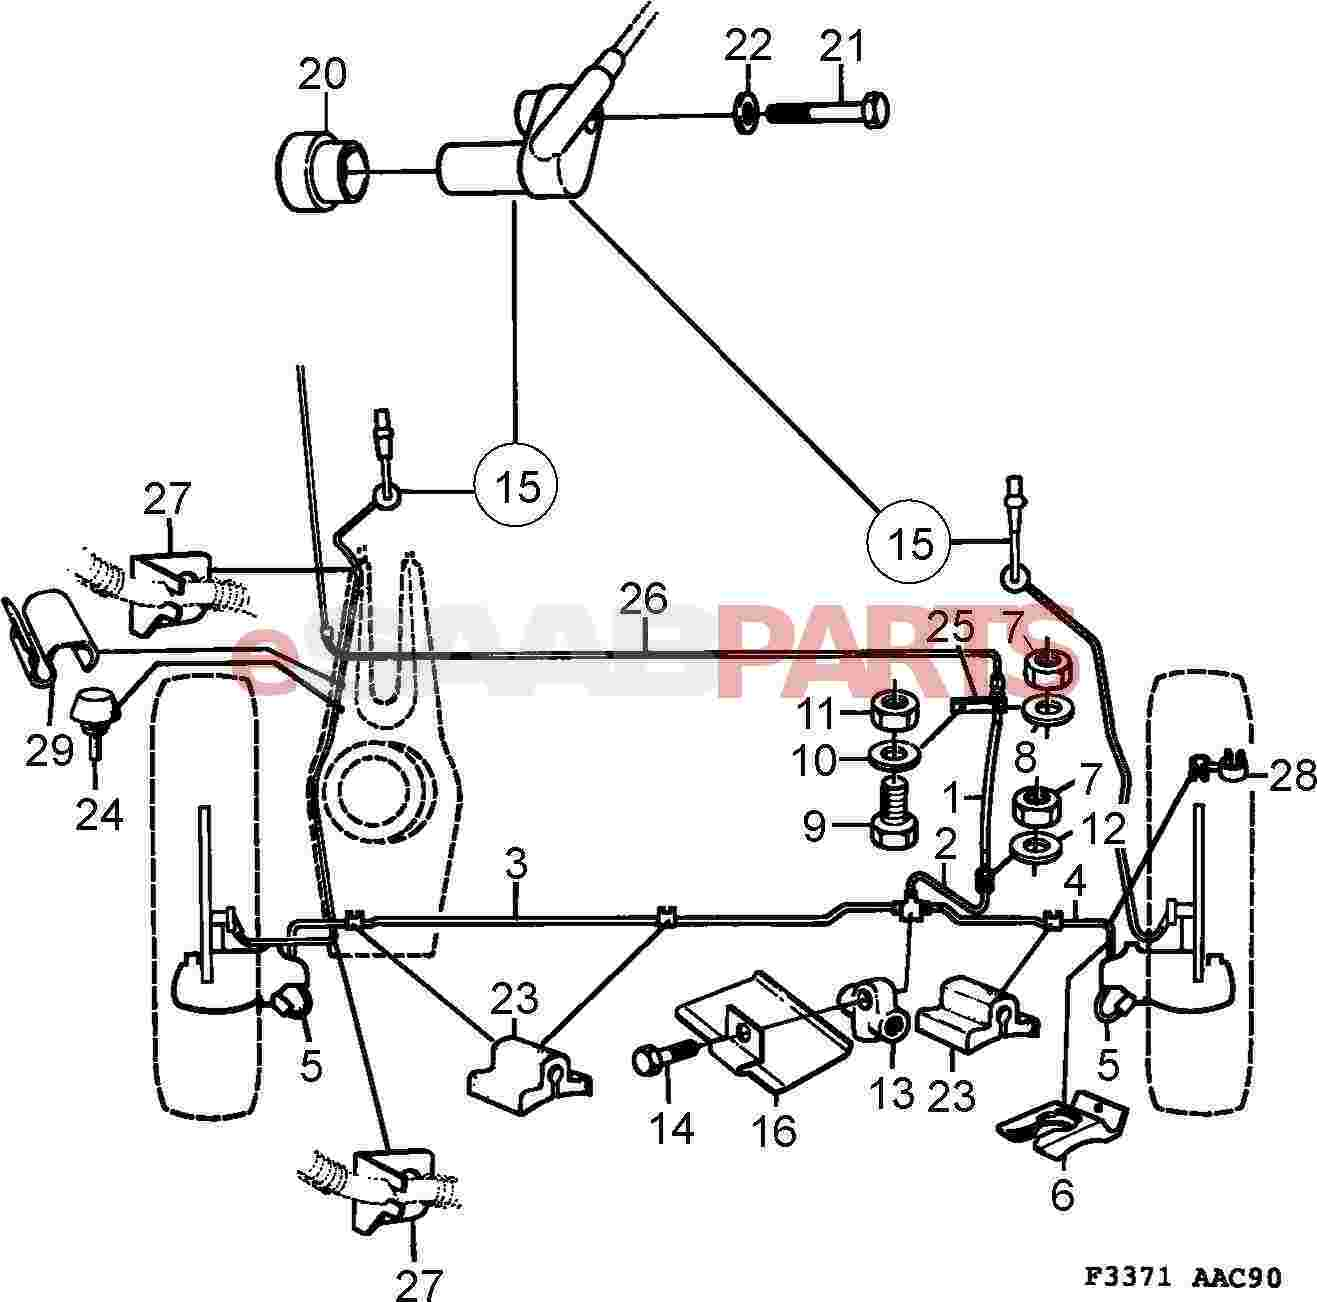 Service manual [1993 Saab 900 Diagram Showing Brake Line